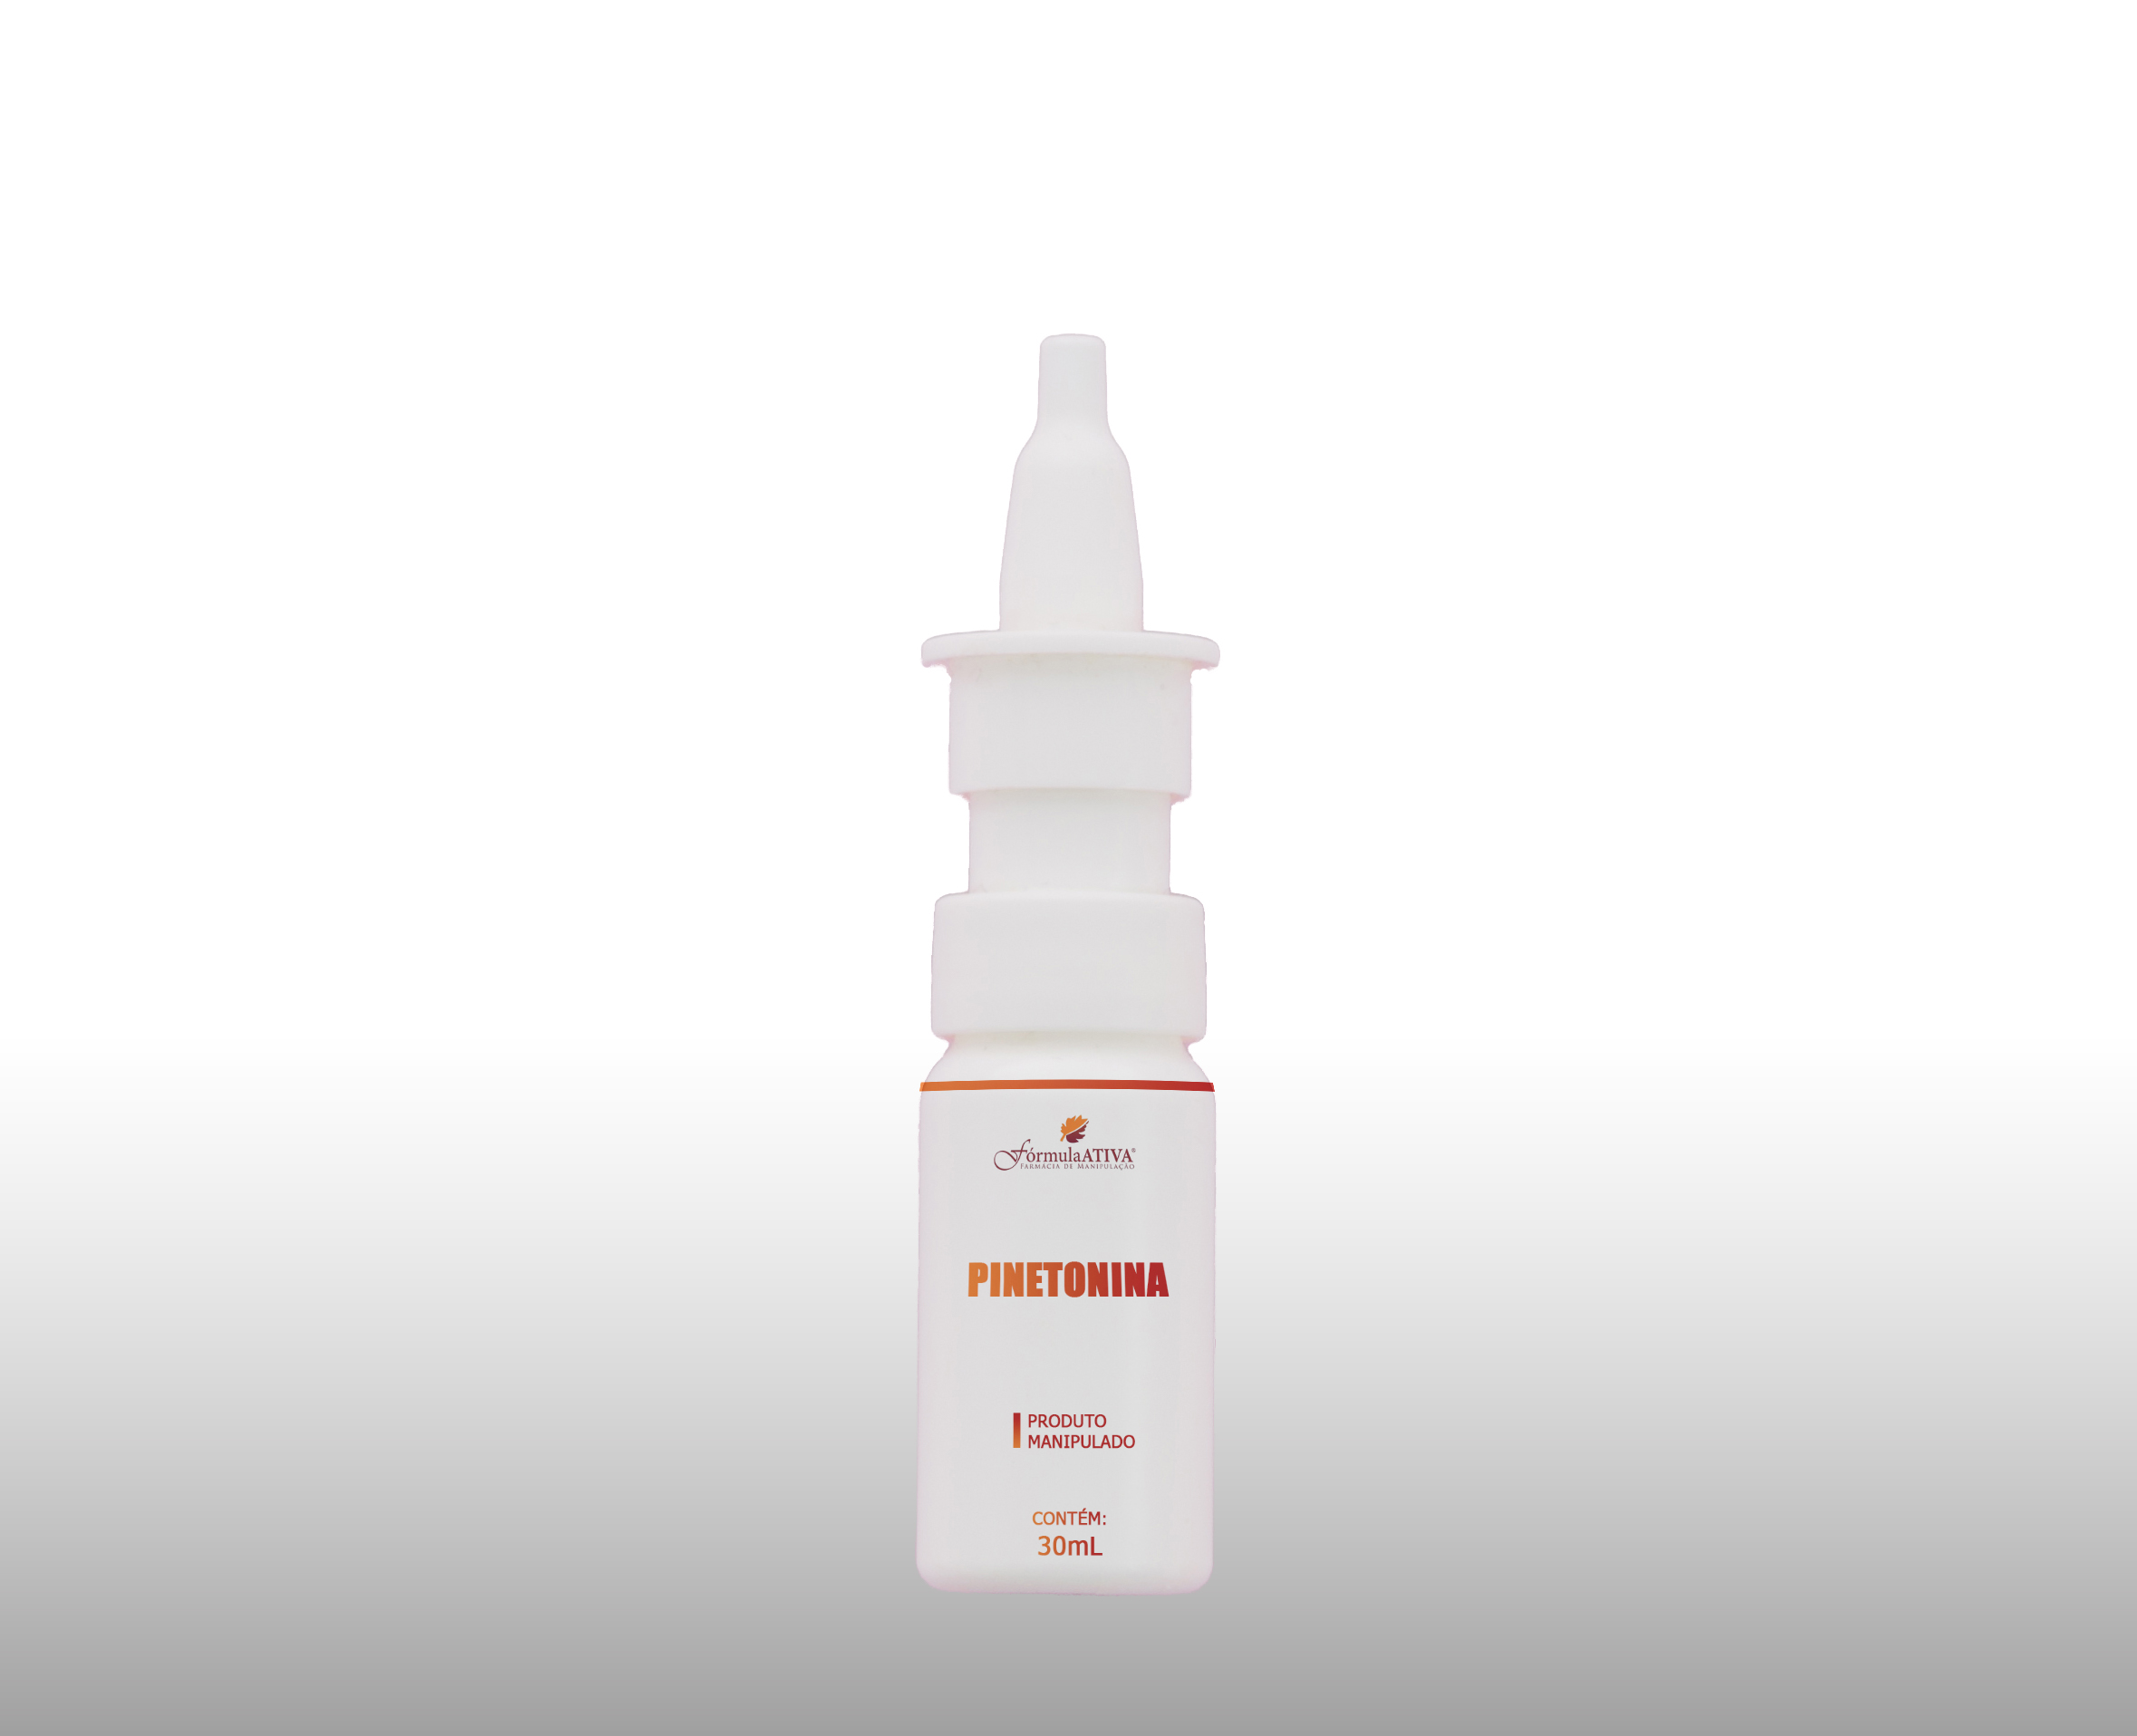 Pinetonina (30mL)